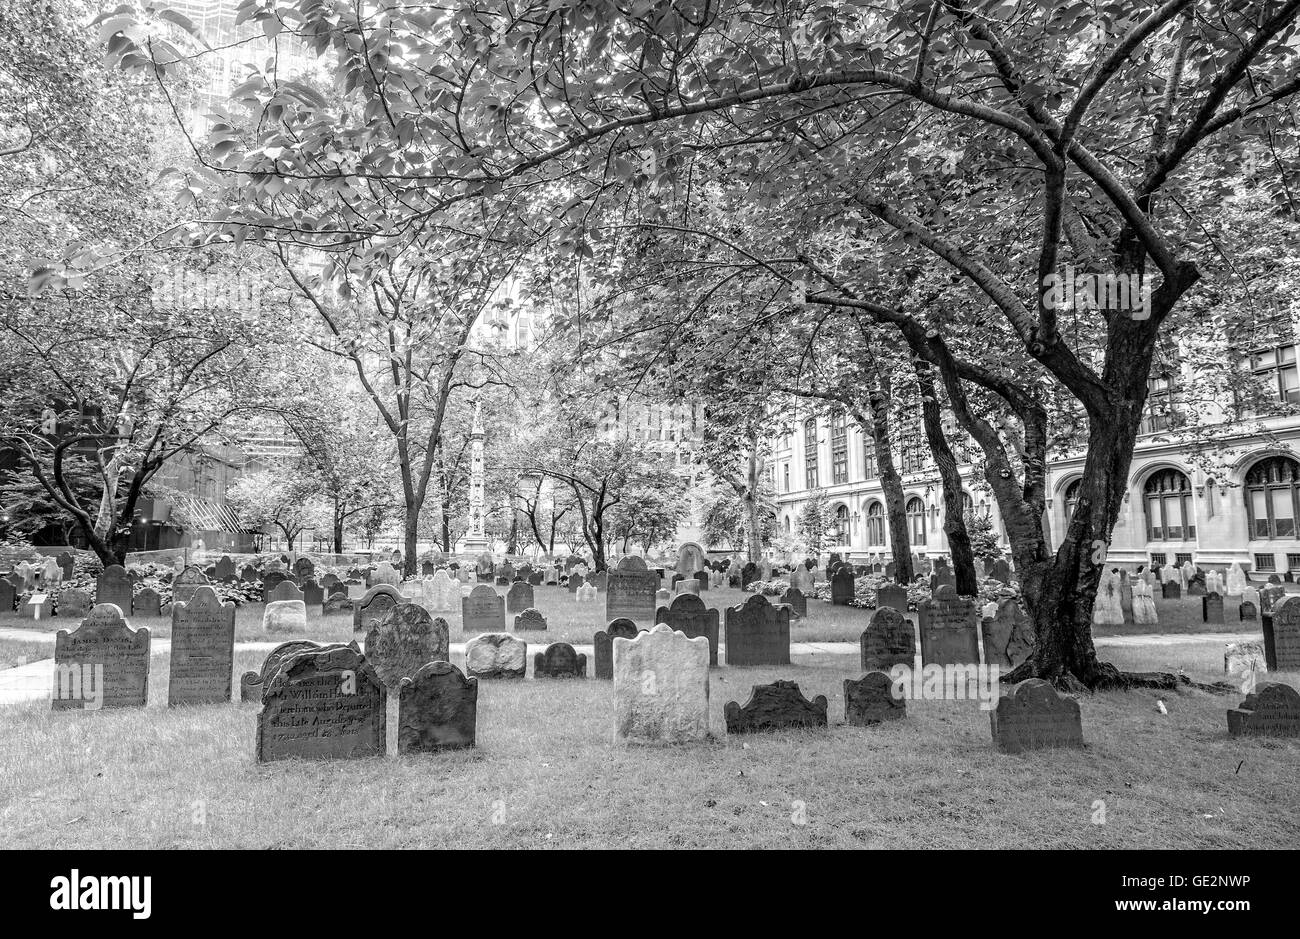 Black and white picture of gravestones in Trinity Church Cemetery. - Stock Image